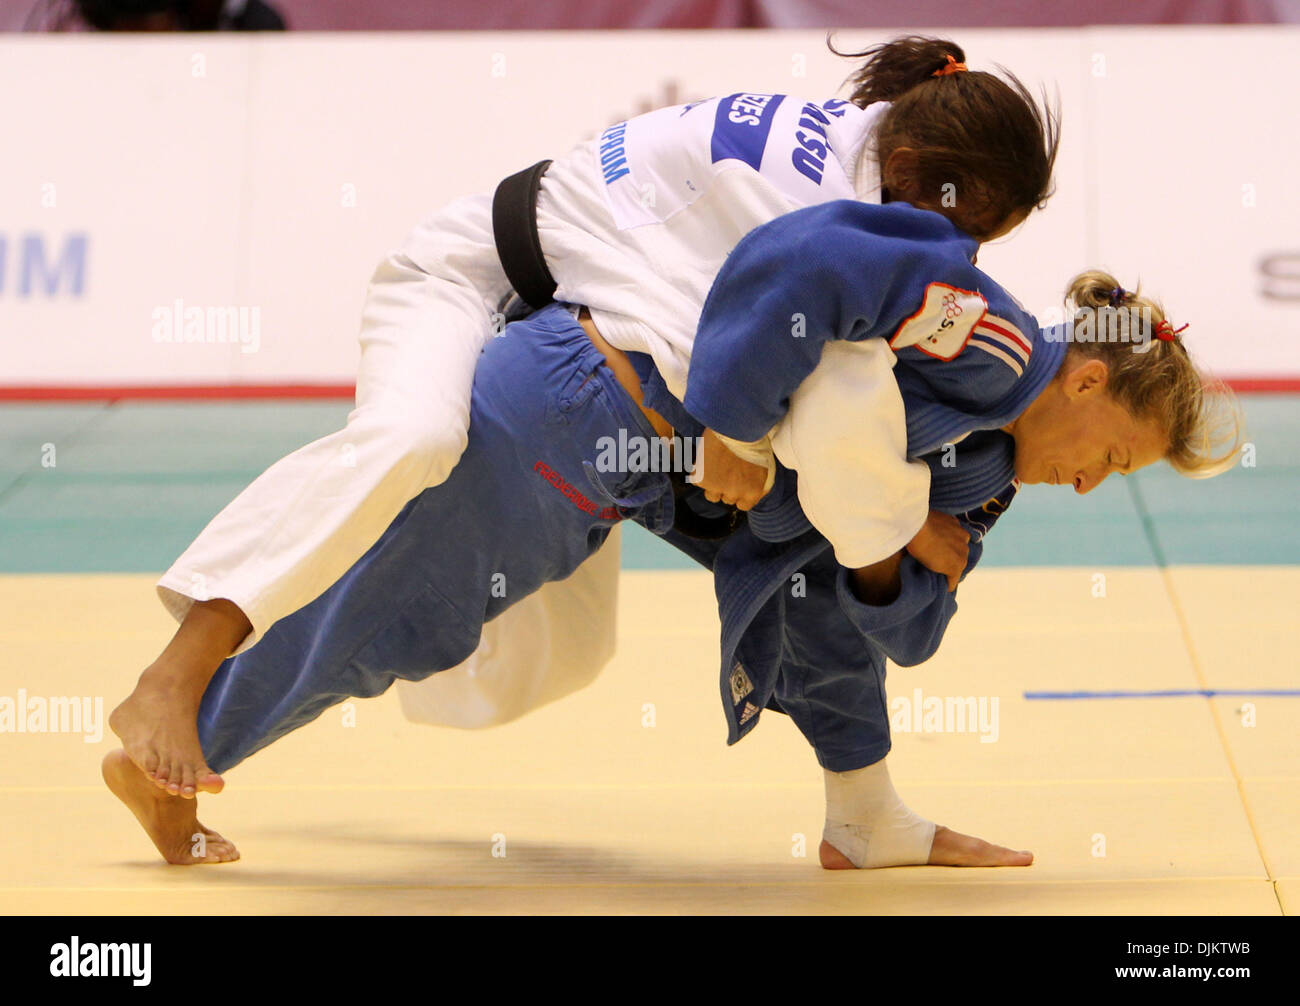 Sep 12, 2010 - Tokyo, Japan - FREDERIGUE JOSSINET of France and SADAH MENEZES of Brazil compete in a Women -48kg match during the World Judo Championships Tokyo 2010 at the Yoyogi National Gymnasium in Tokyo, Japan. Menezes came 3rd in this competition. (Credit Image: © Junko Kimura/Jana/ZUMApress.com) - Stock Image